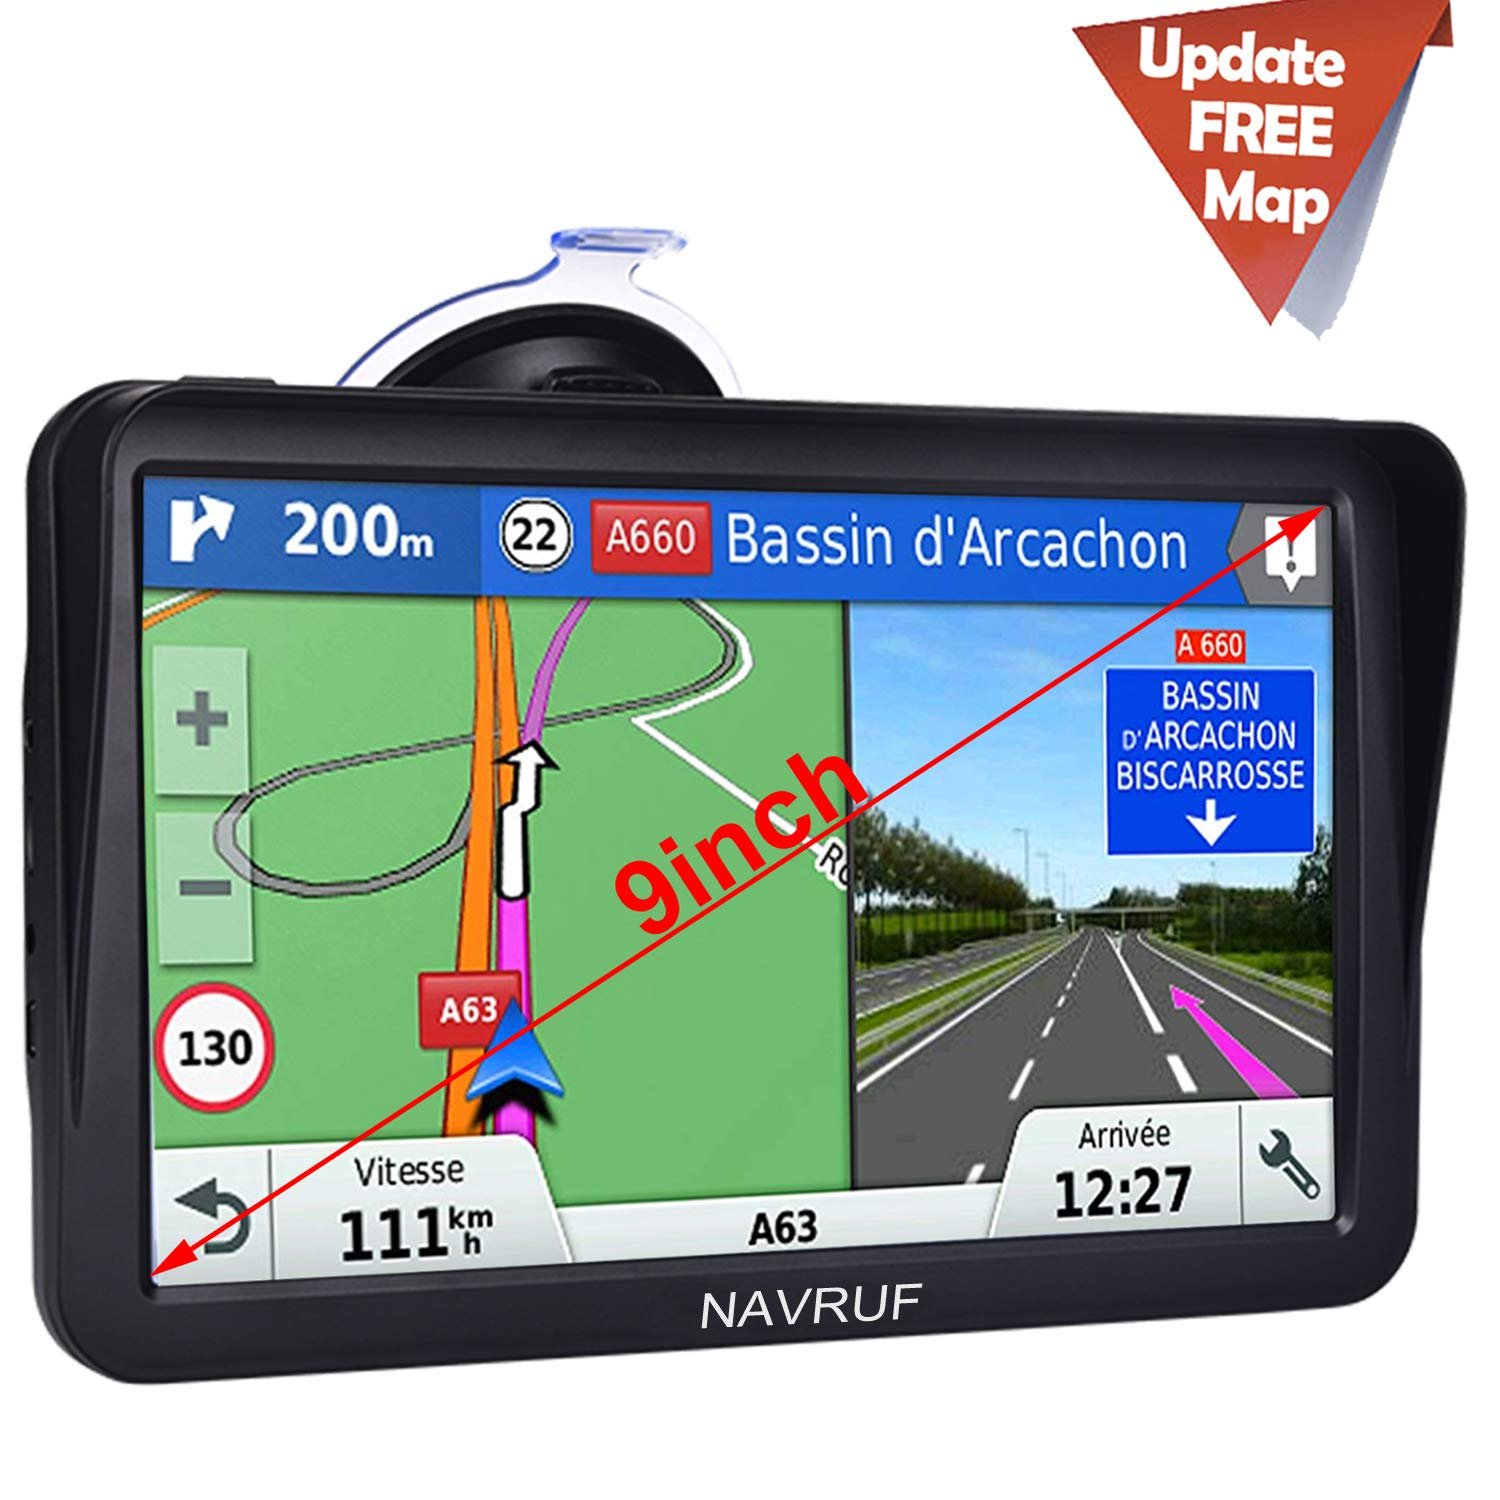 Car GPS Navigation,9 inch Truck GPS Touchscreen with Sunshade GPS Navigation System for Truck,8GB 256MB Navigation with POI Speed Camera Warning,Voice Guidance Lane,Free Lifetime Map Updates by NAVRUF